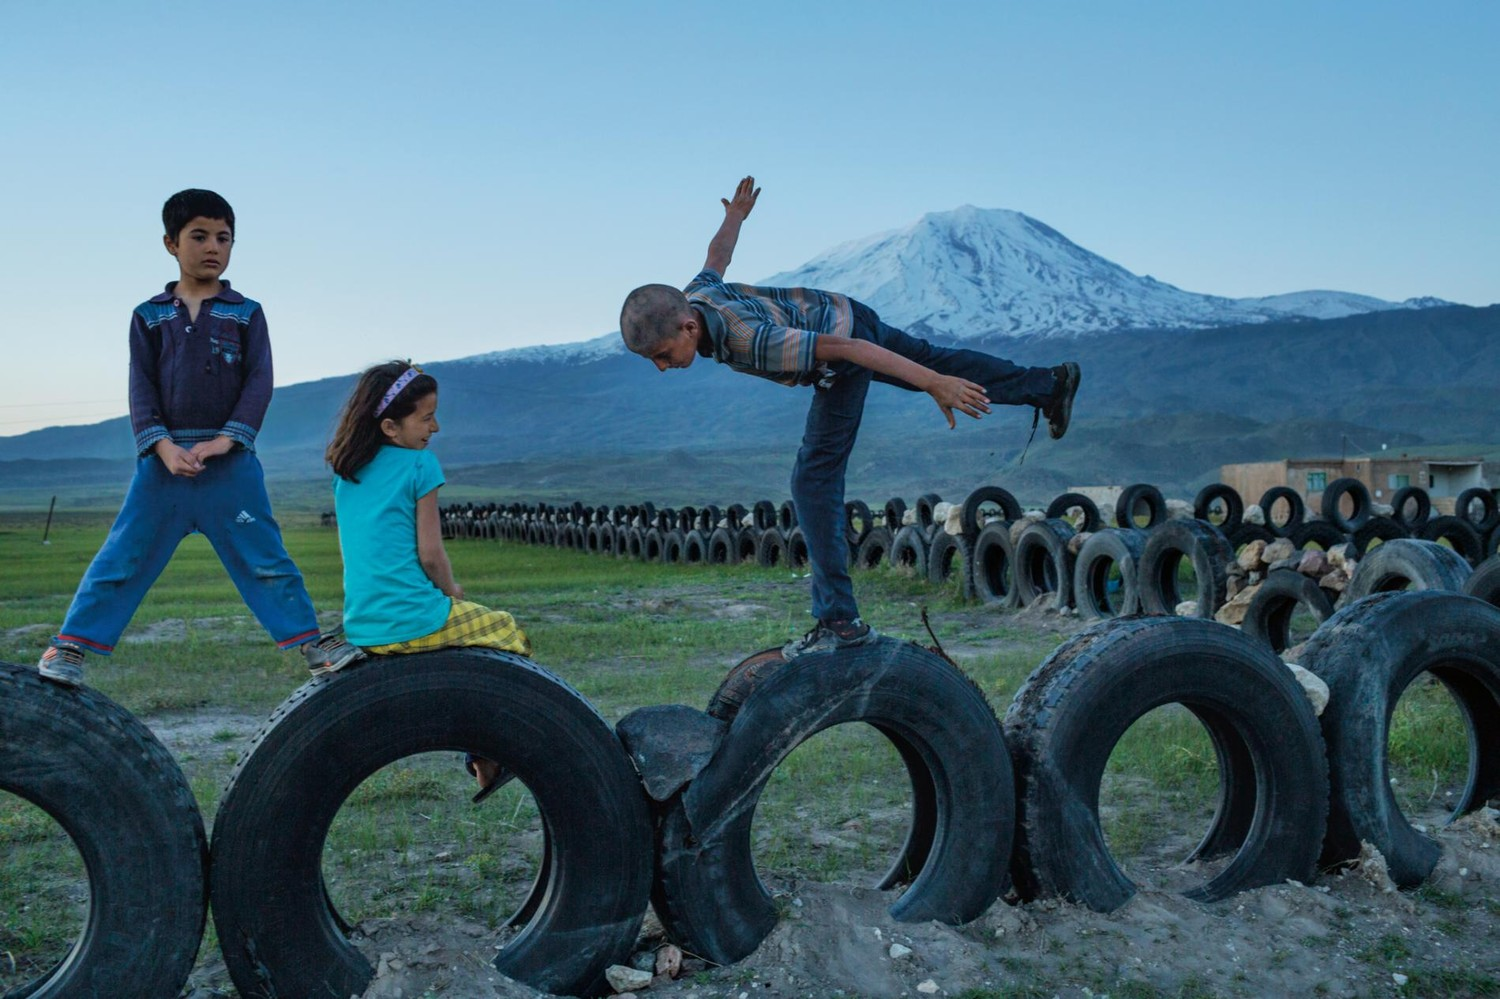 Walking through a landscape of pain in the caucasus out of eden walk children in turkey play at the foot of mt ararat a peak of symbolic importance to armenian identity buycottarizona Images